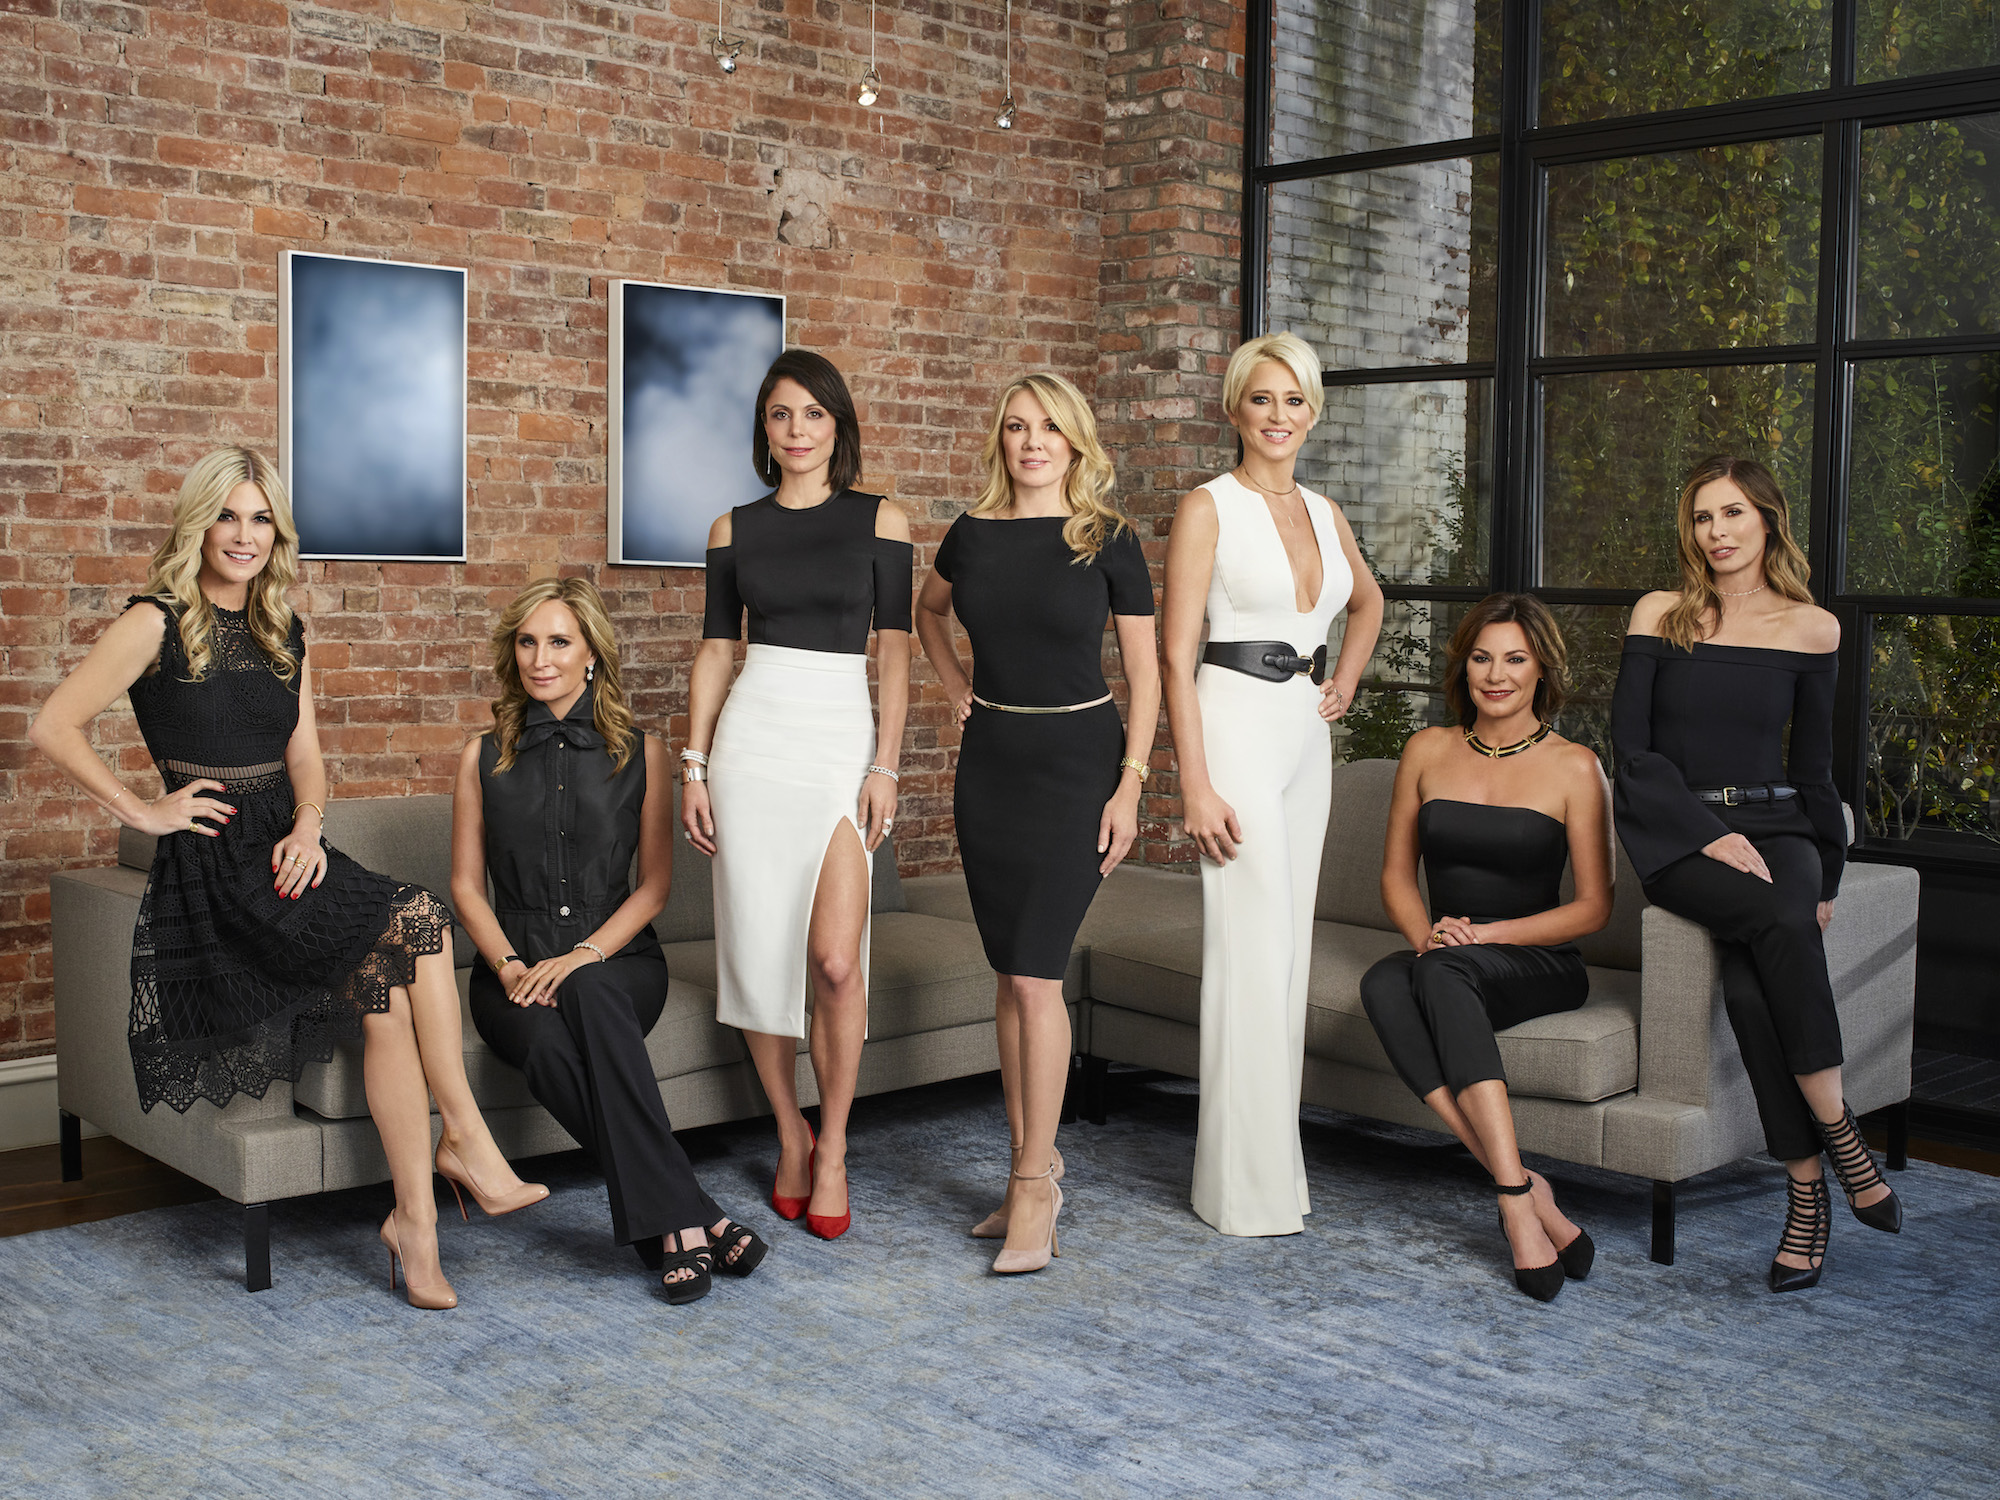 Say what you want about Bravo's  Real Housewives  franchise... but then again, maybe don't say what you want, and give it a chance instead. Above, the cast of  RHONY   s eason 10, from left to right: Tinsley Mortimer, Sonja Morgan, Bethenny Frankel, Ramona Singer, Dorinda Medley, Luann de Lesseps, and Carole Radziwill